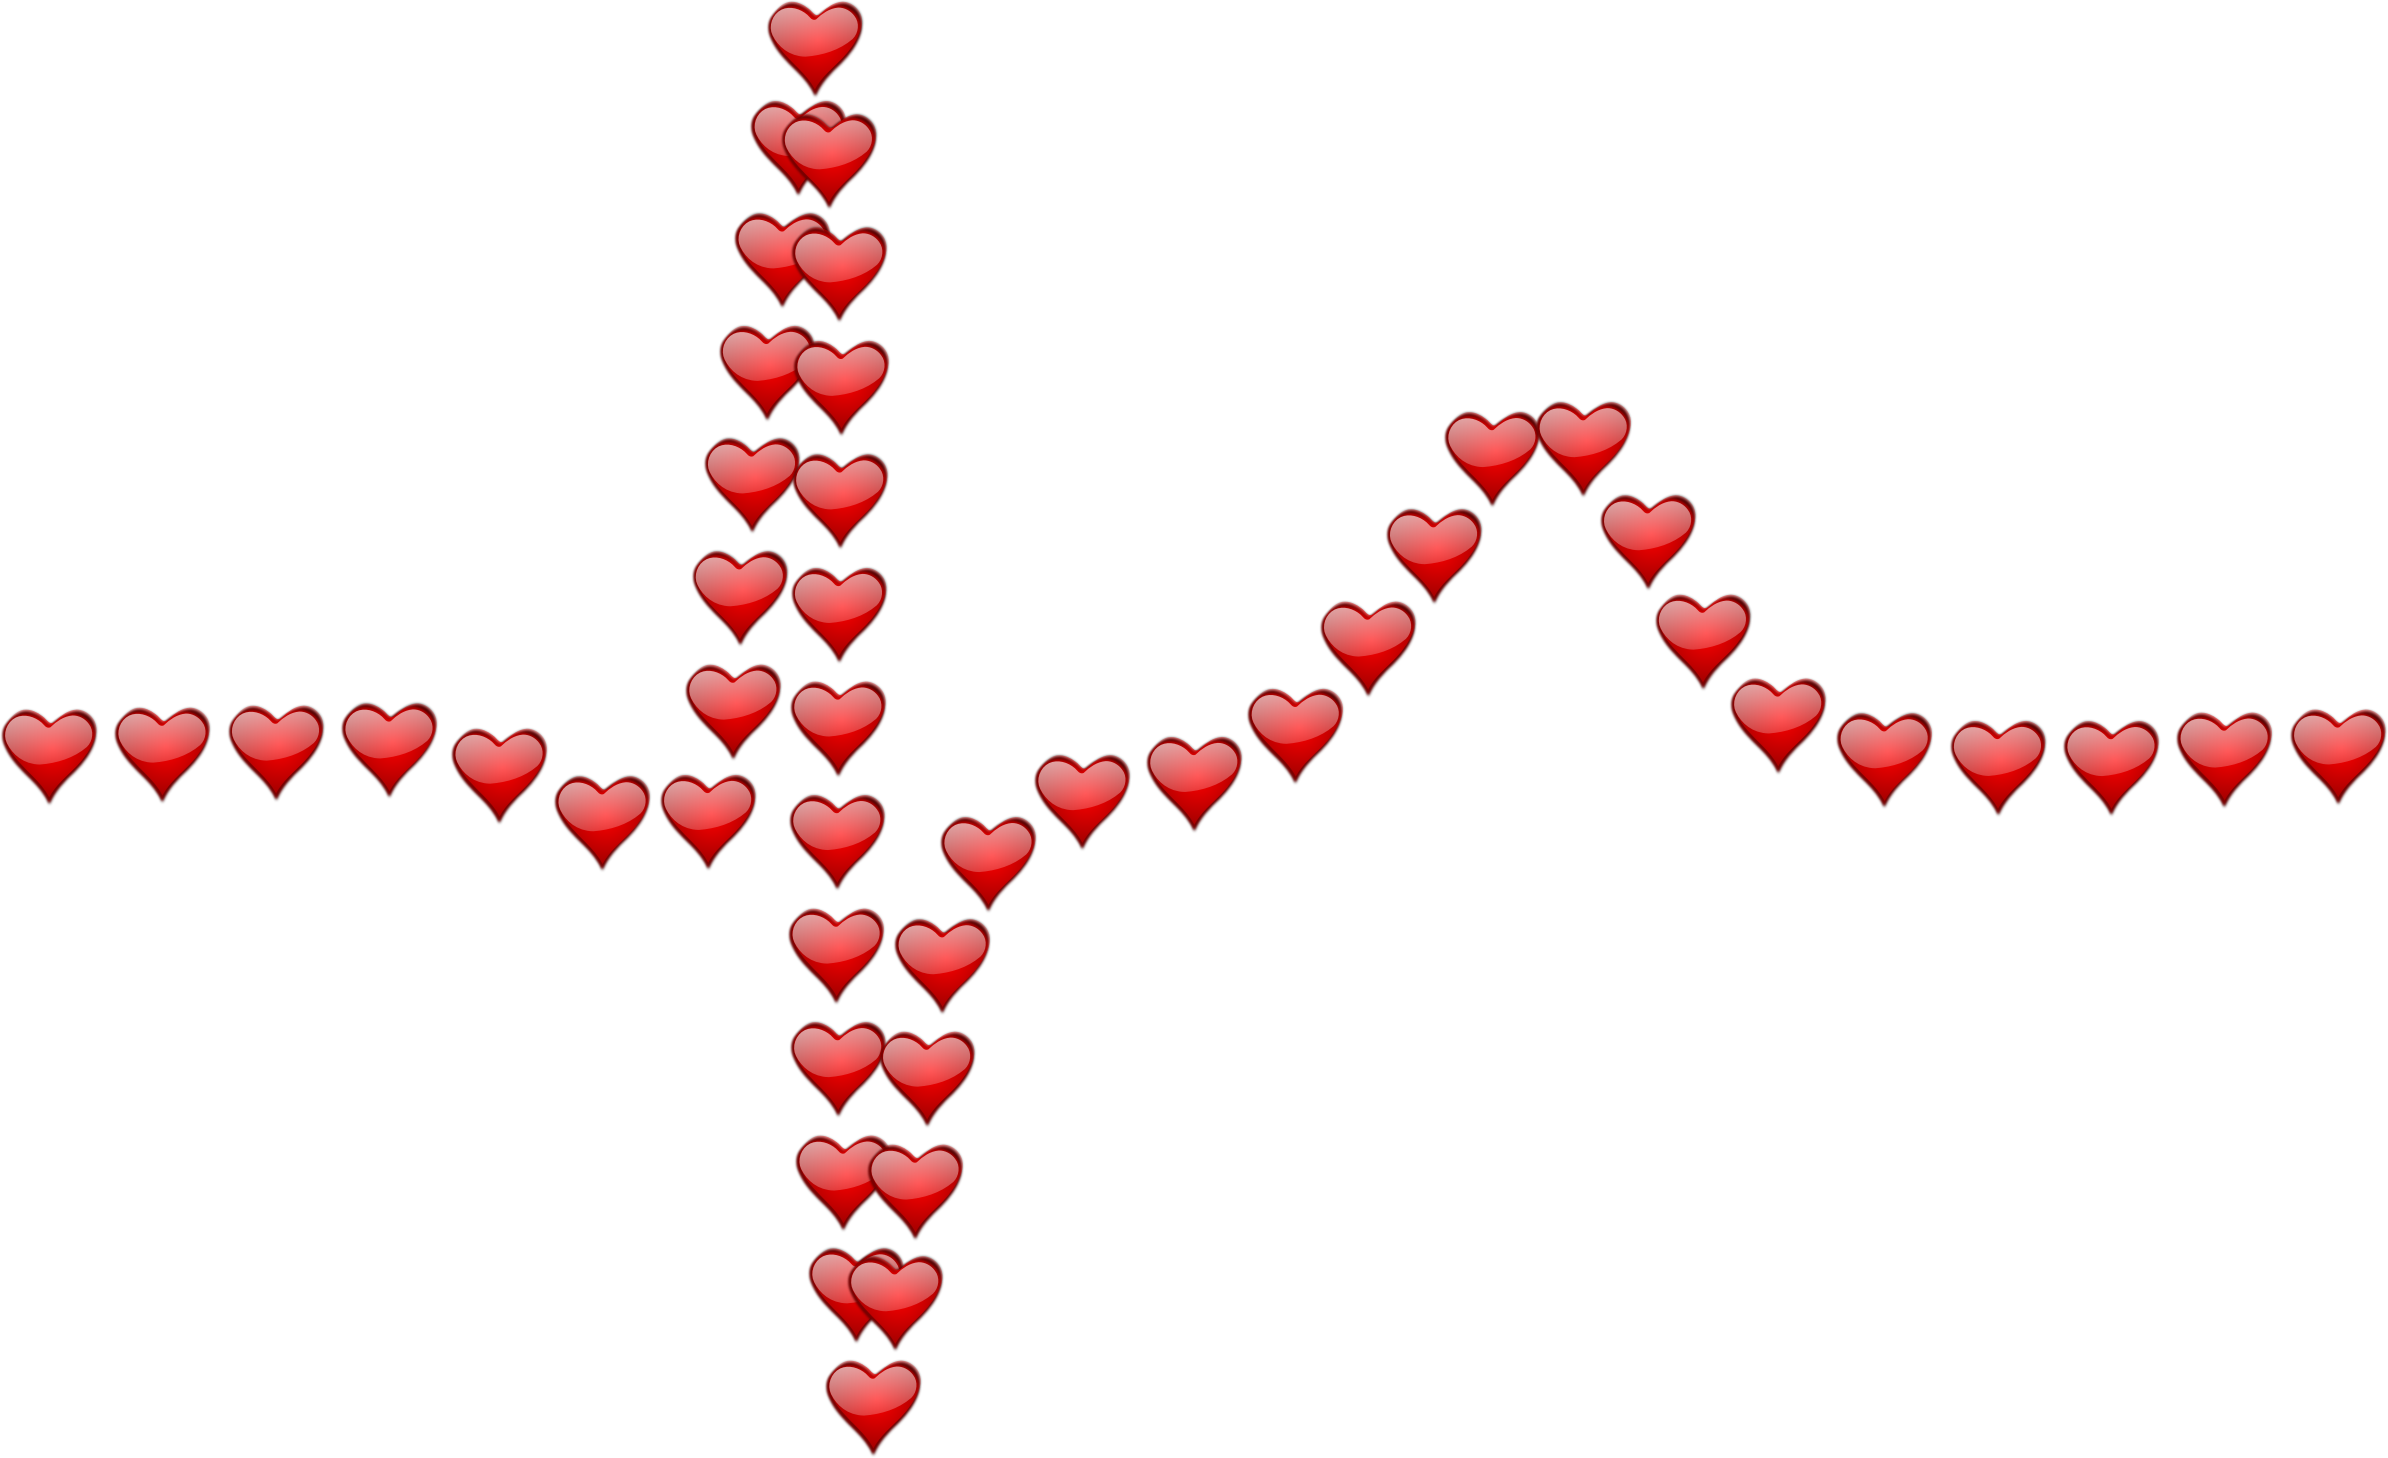 Ecg icons free and. Line of hearts png